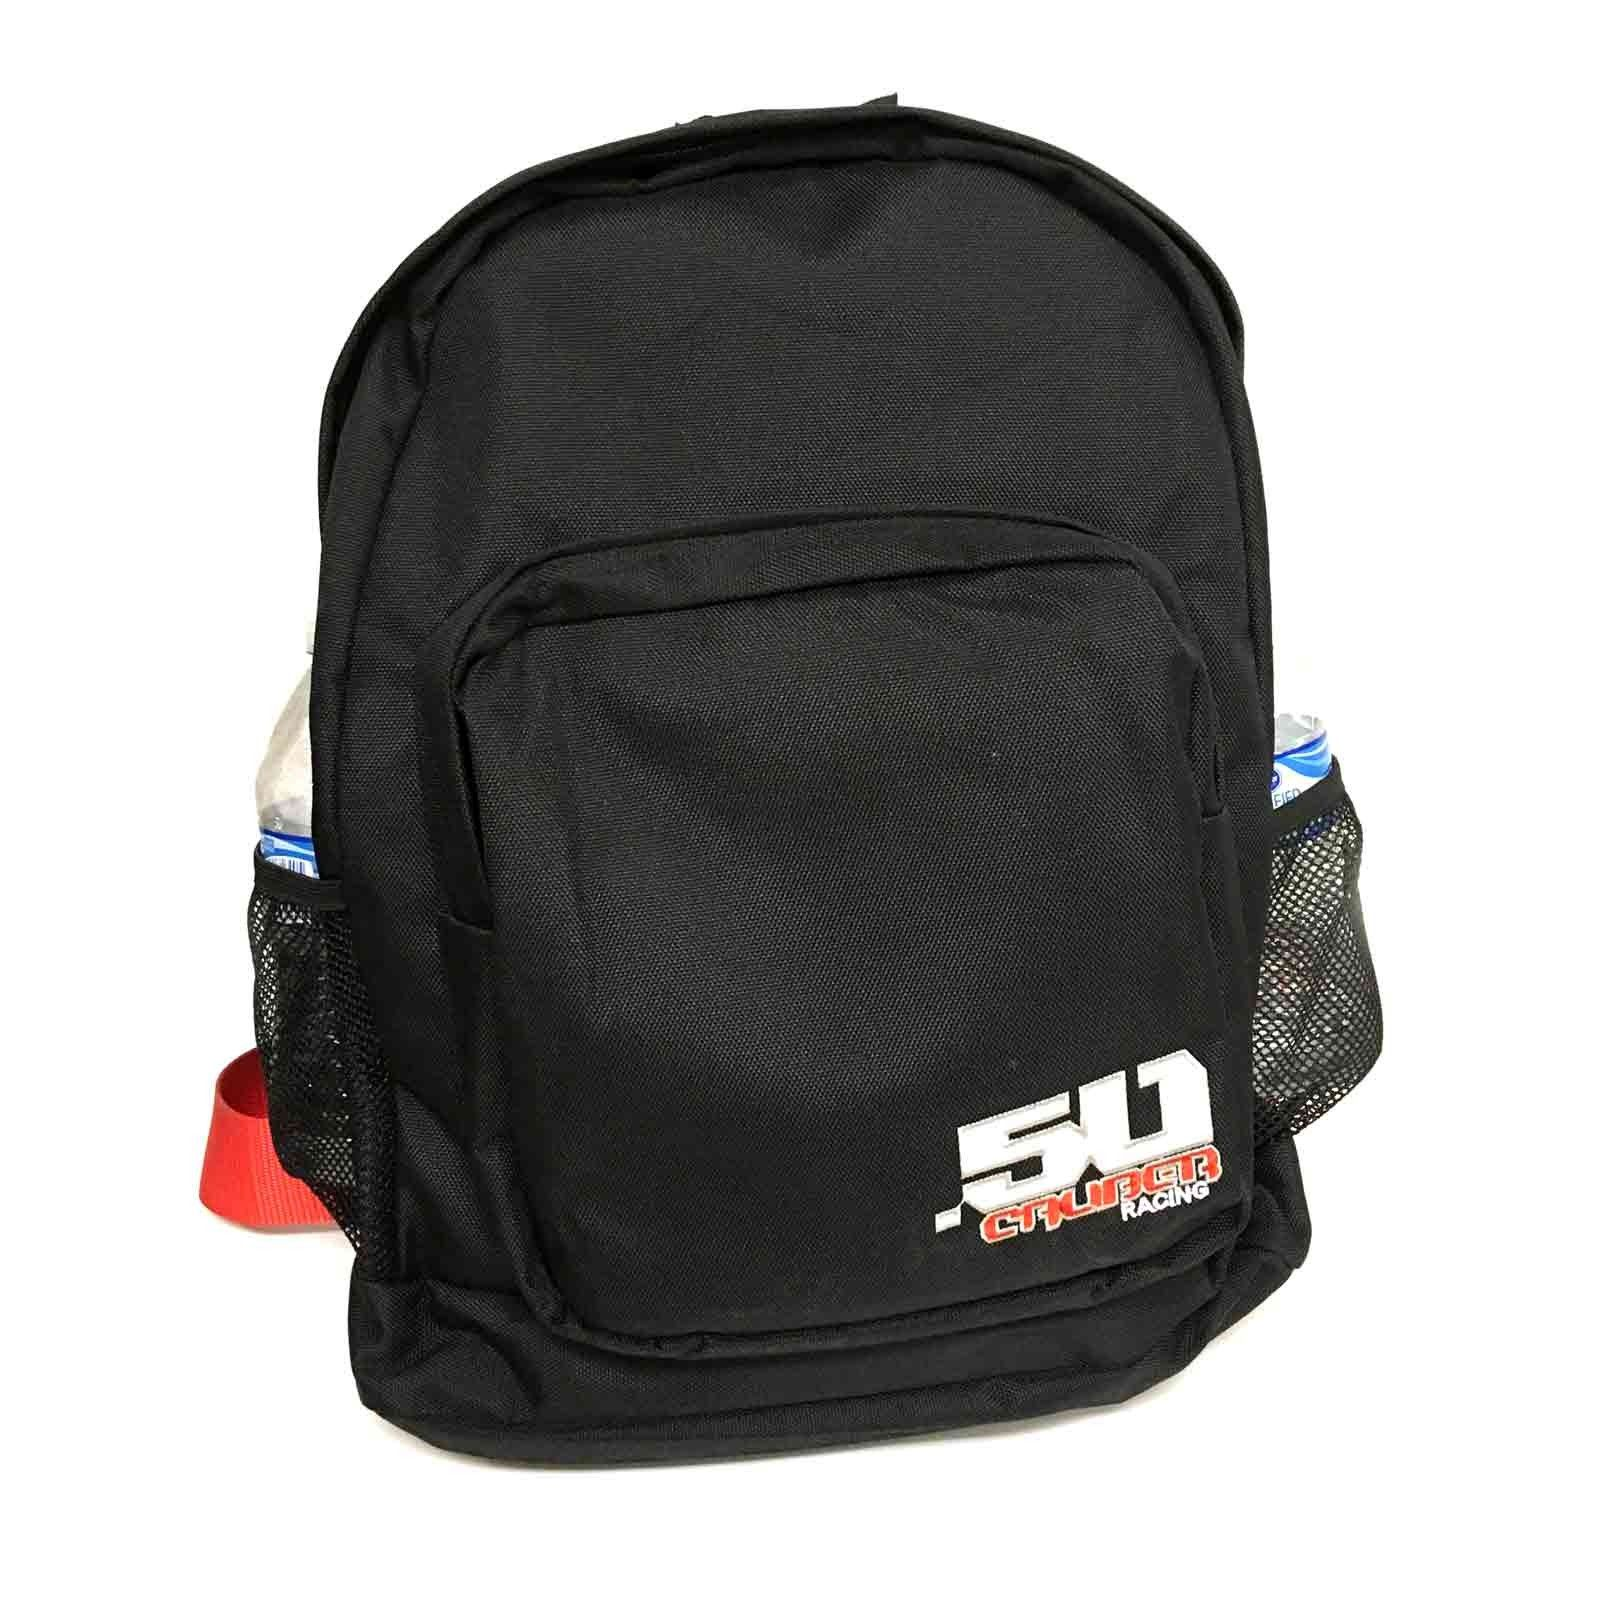 50 Caliber Racing Logo Backpack with Padded 5 point